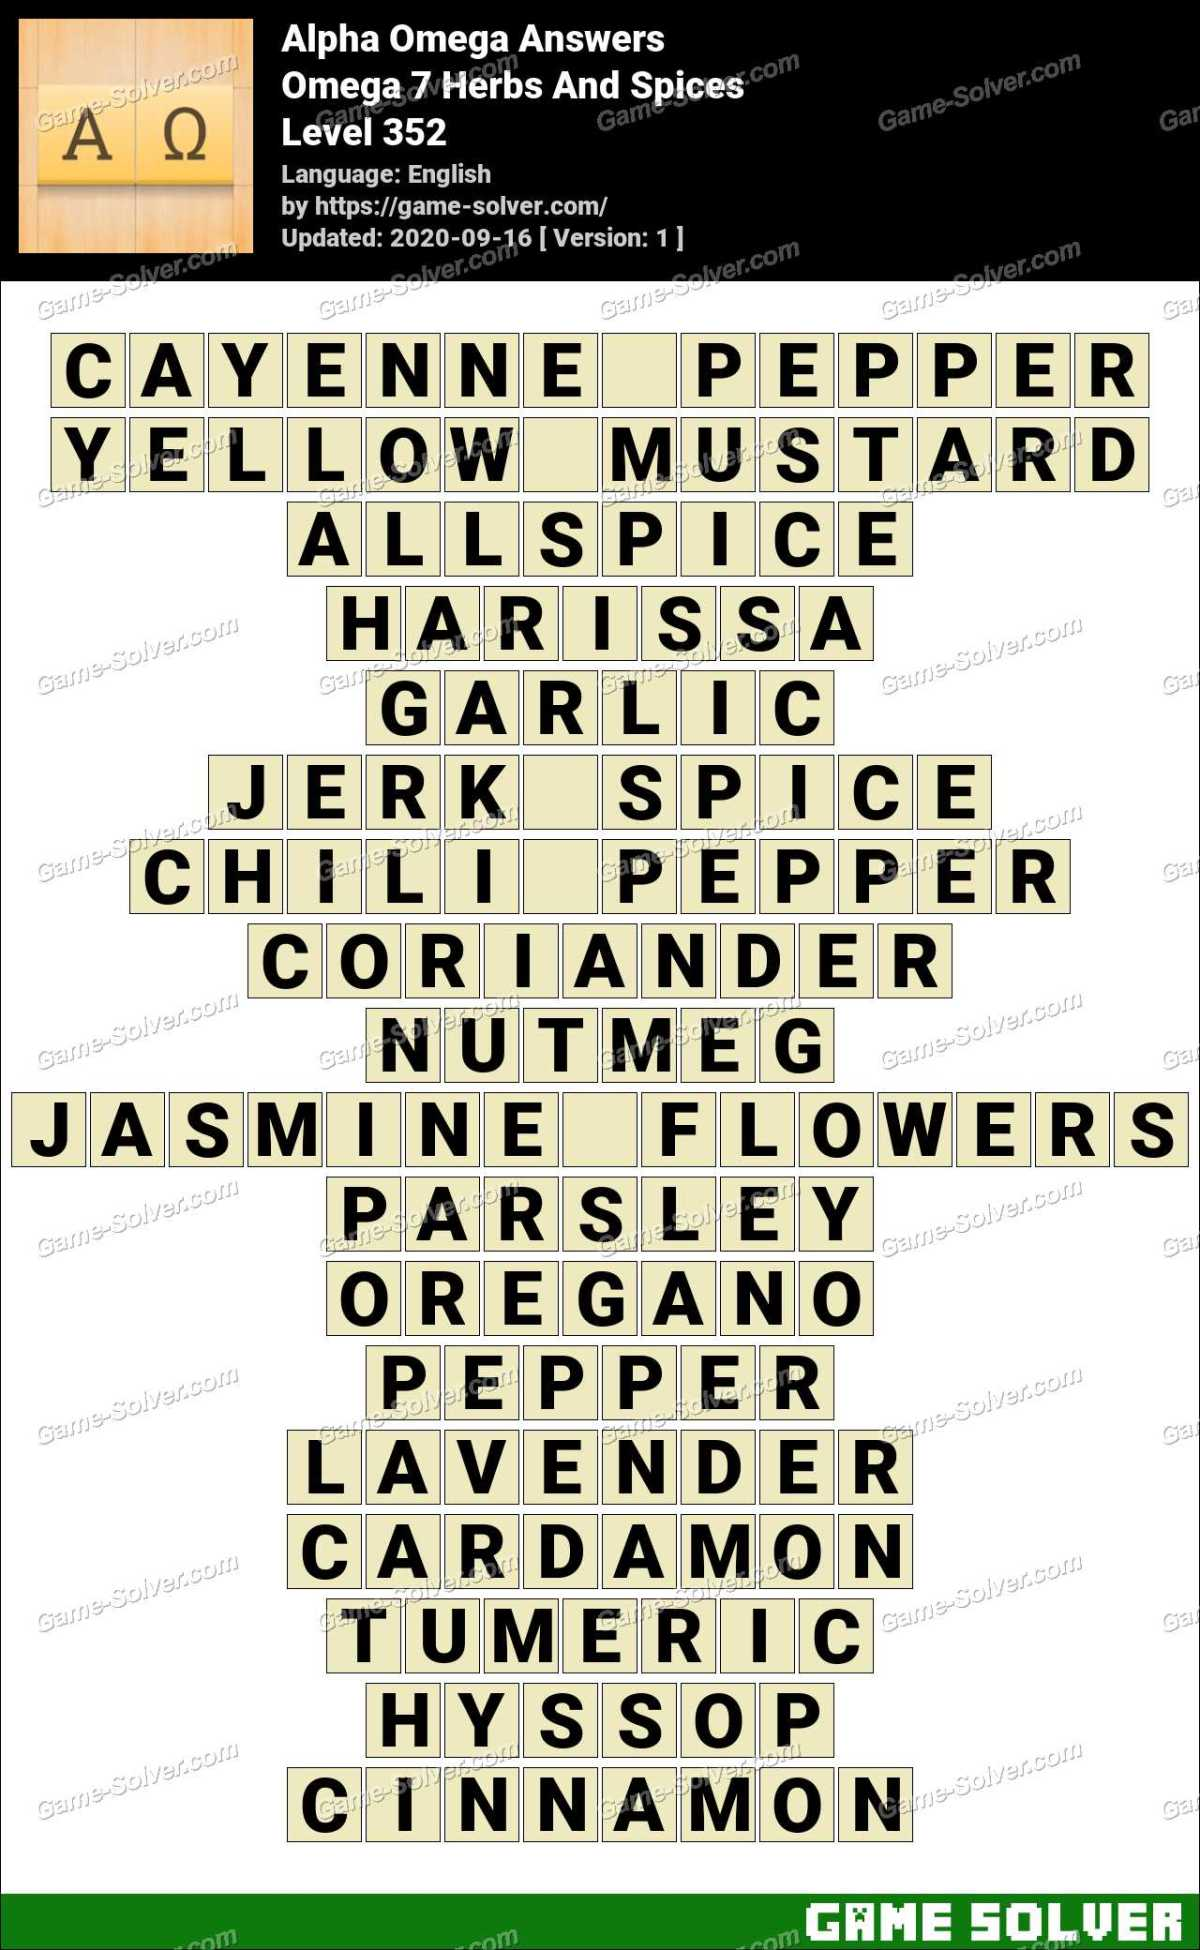 Alpha Omega Omega 7 Herbs And Spices